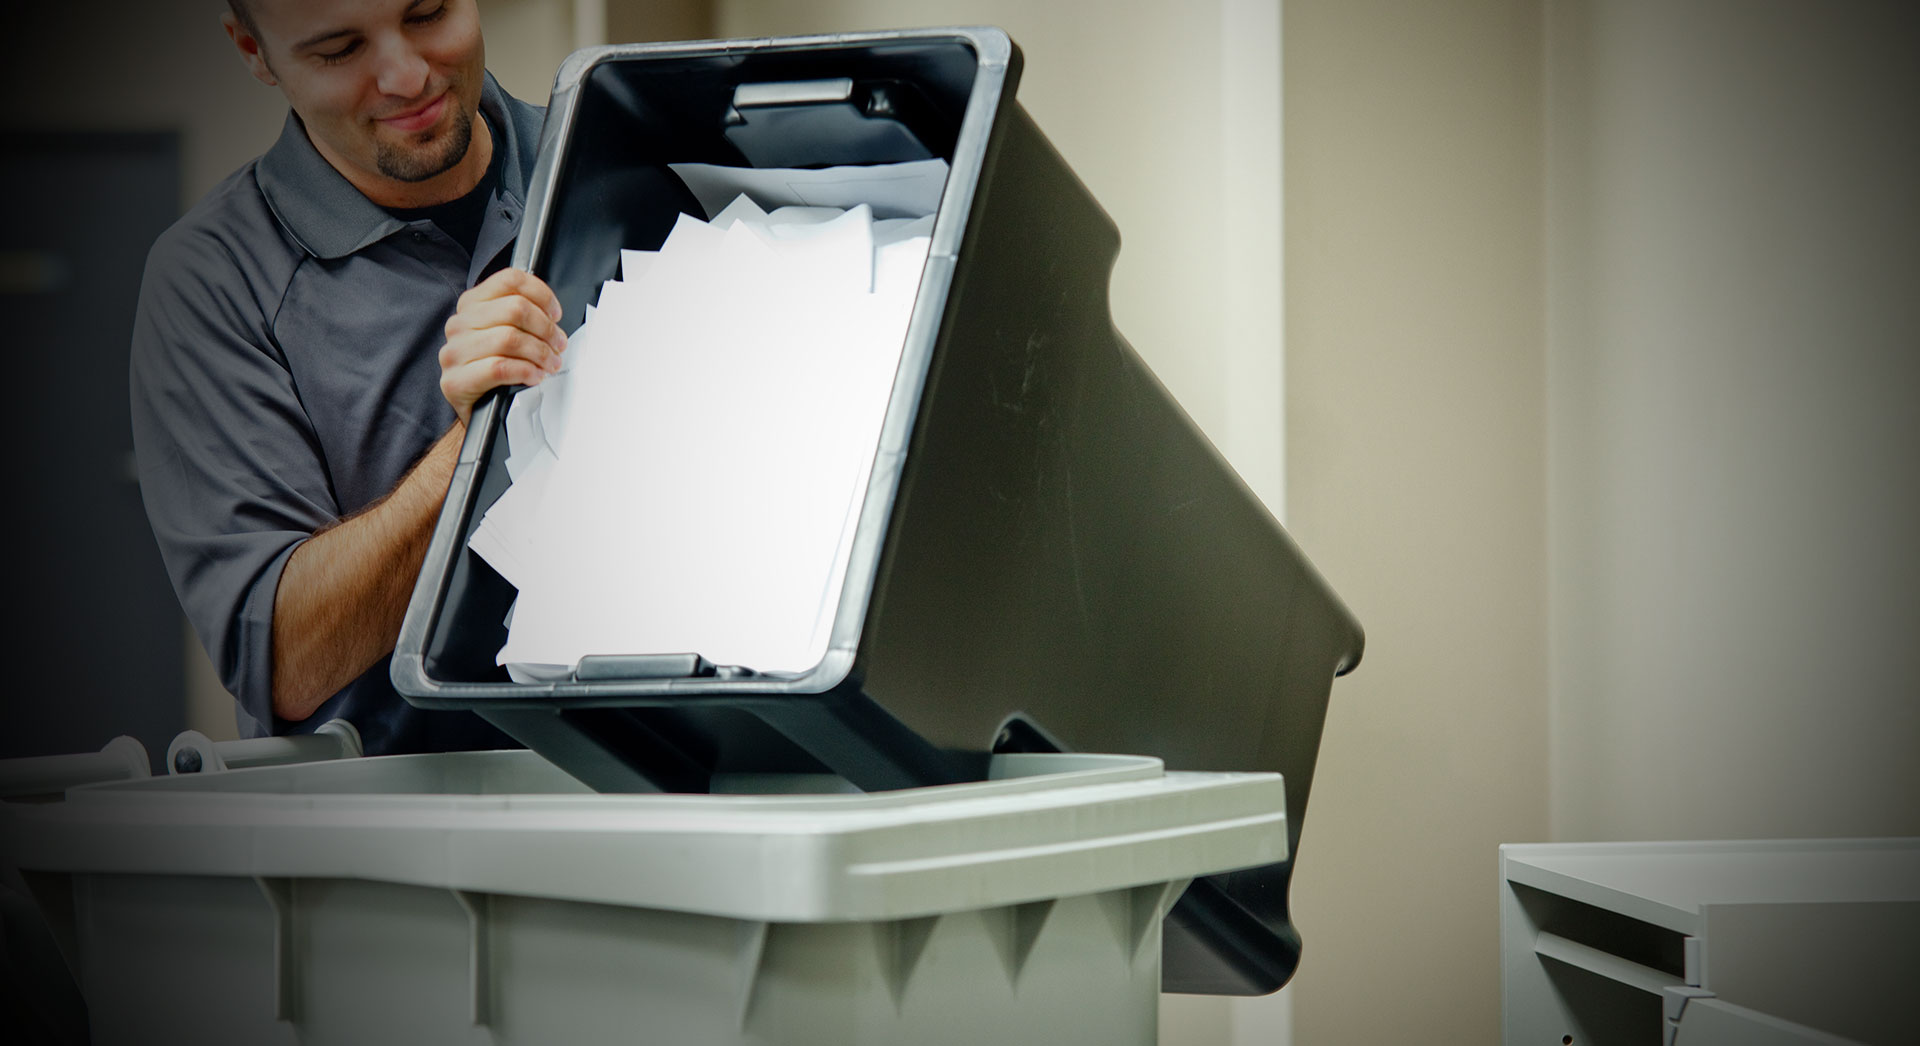 paper shredding business We provide cost-effective mobile, al paper shredding for any size business whether you have one employee or thousands, secure on site shredding services will ensure all of your sensitive data is destroyed without a trace before it leaves your sight.